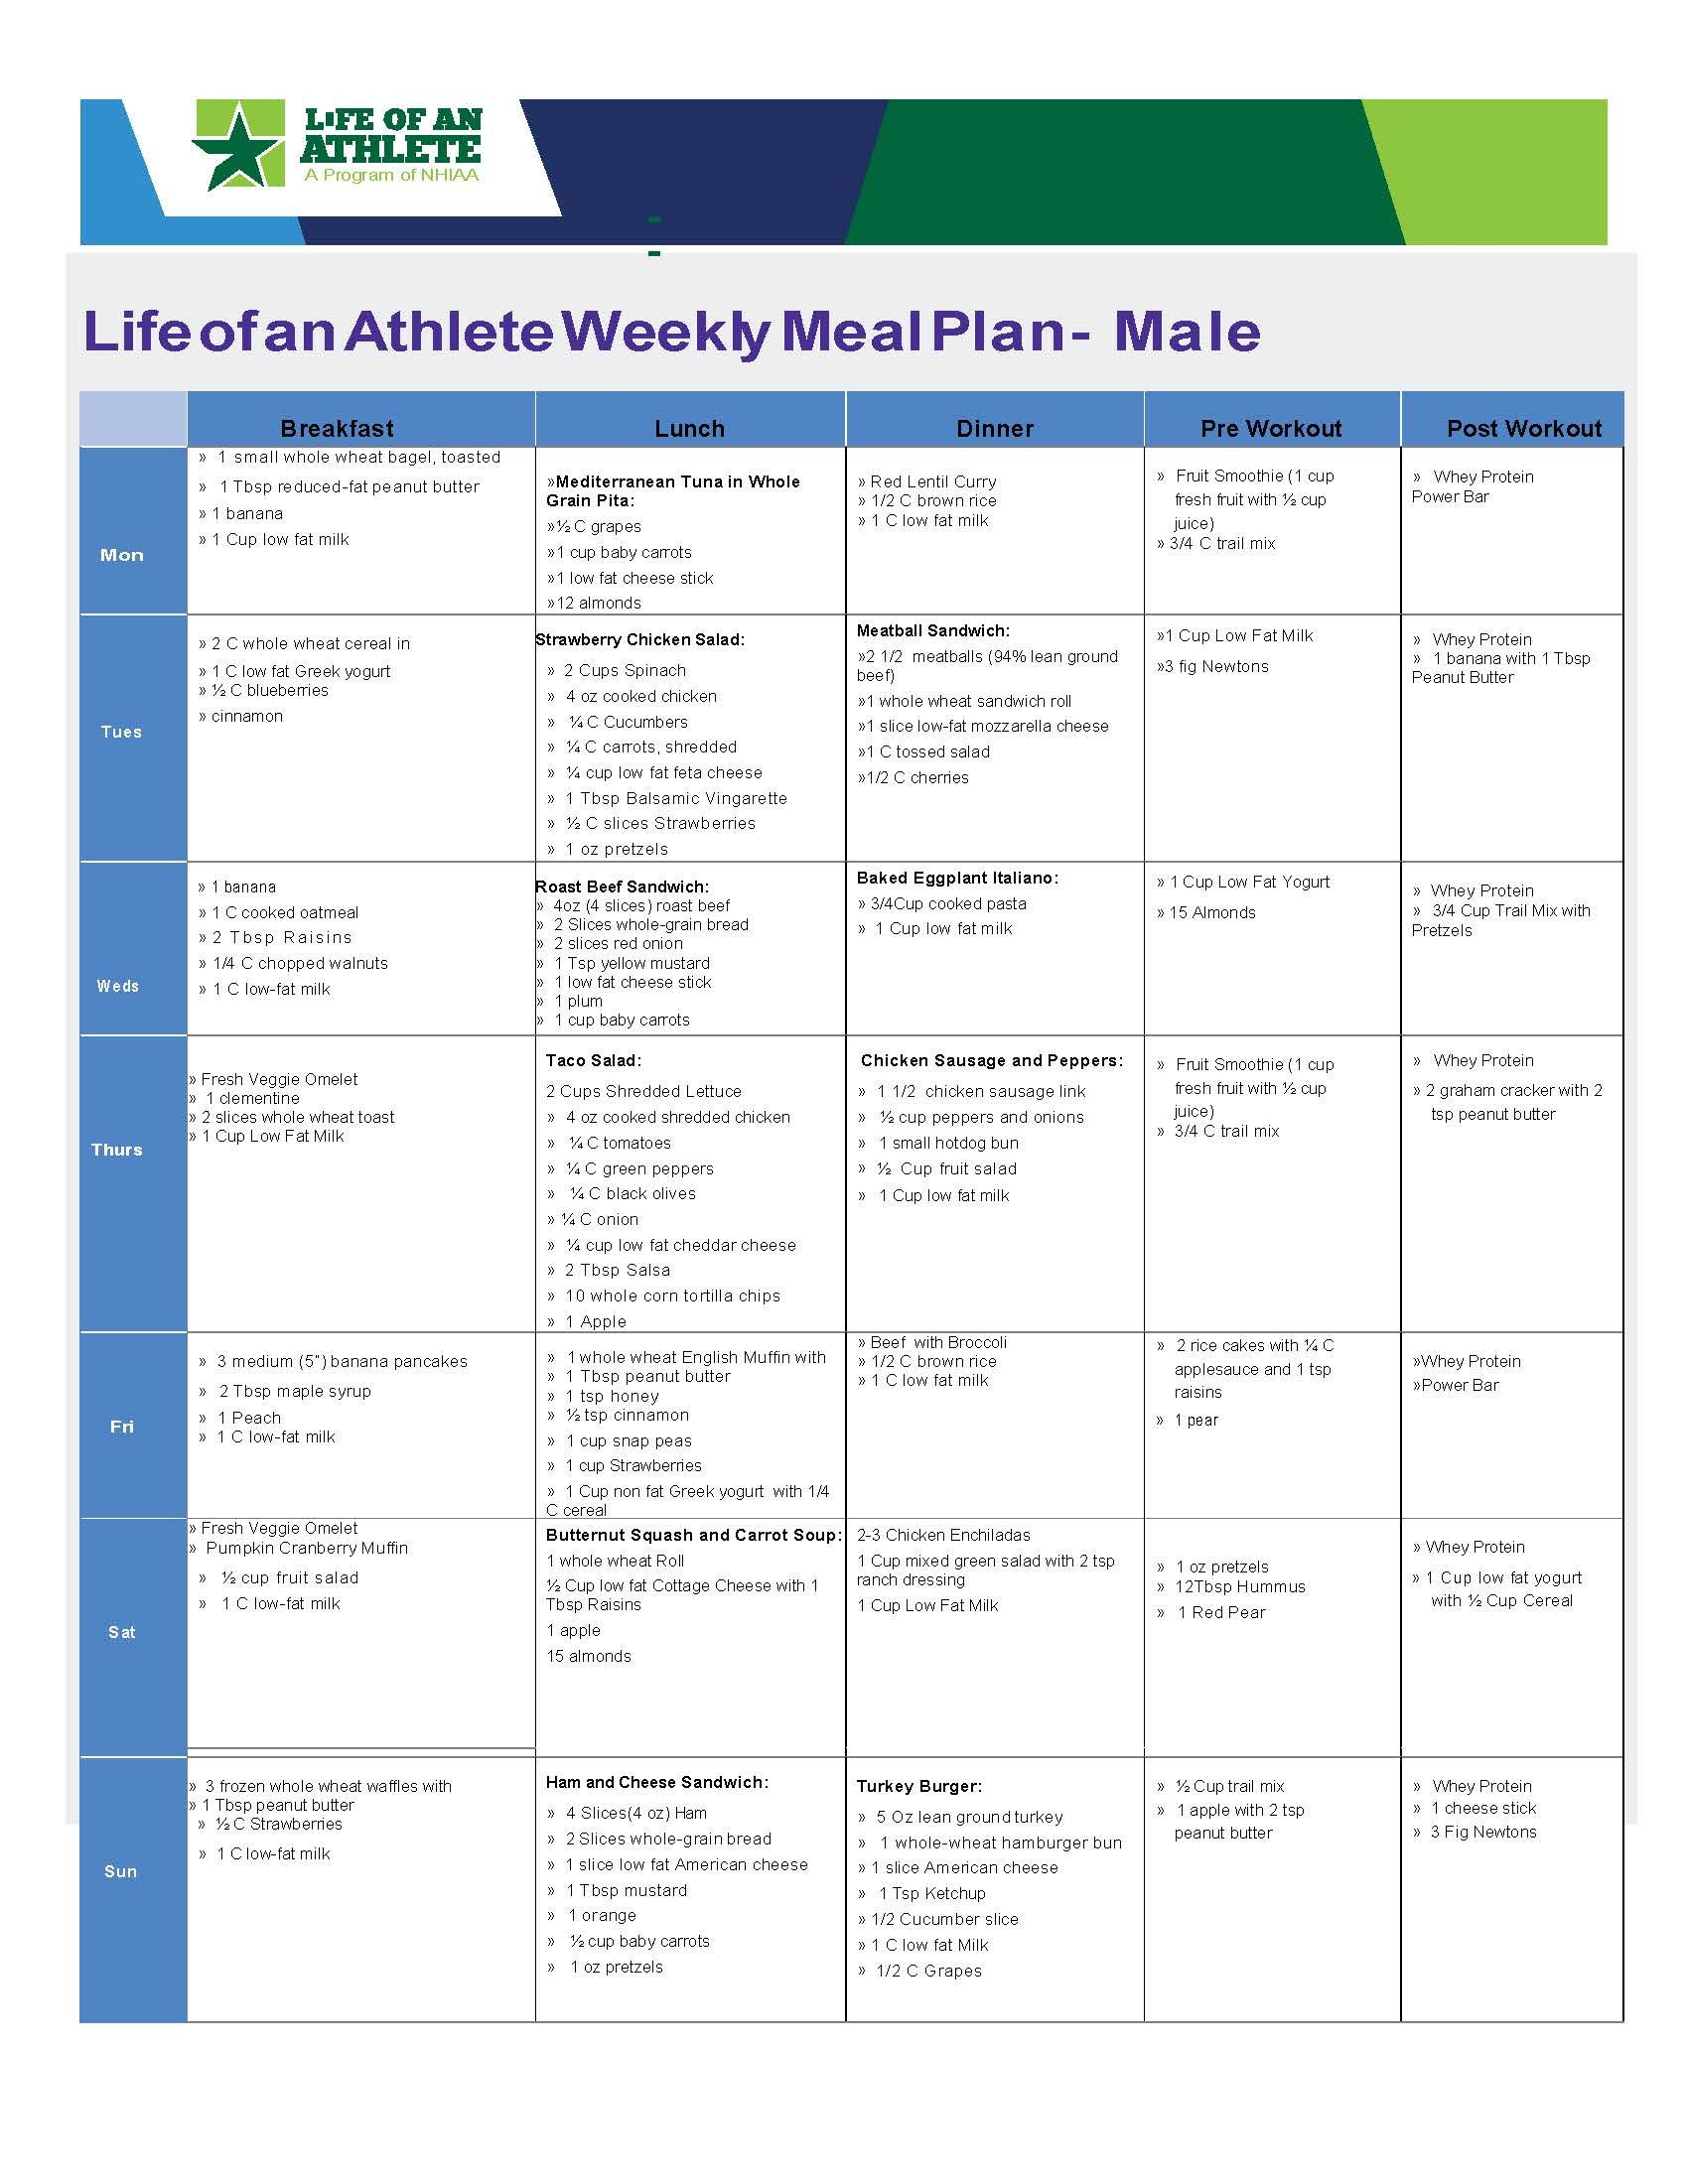 loa weekly meal plan for male athlete week 11 weekly meal plans